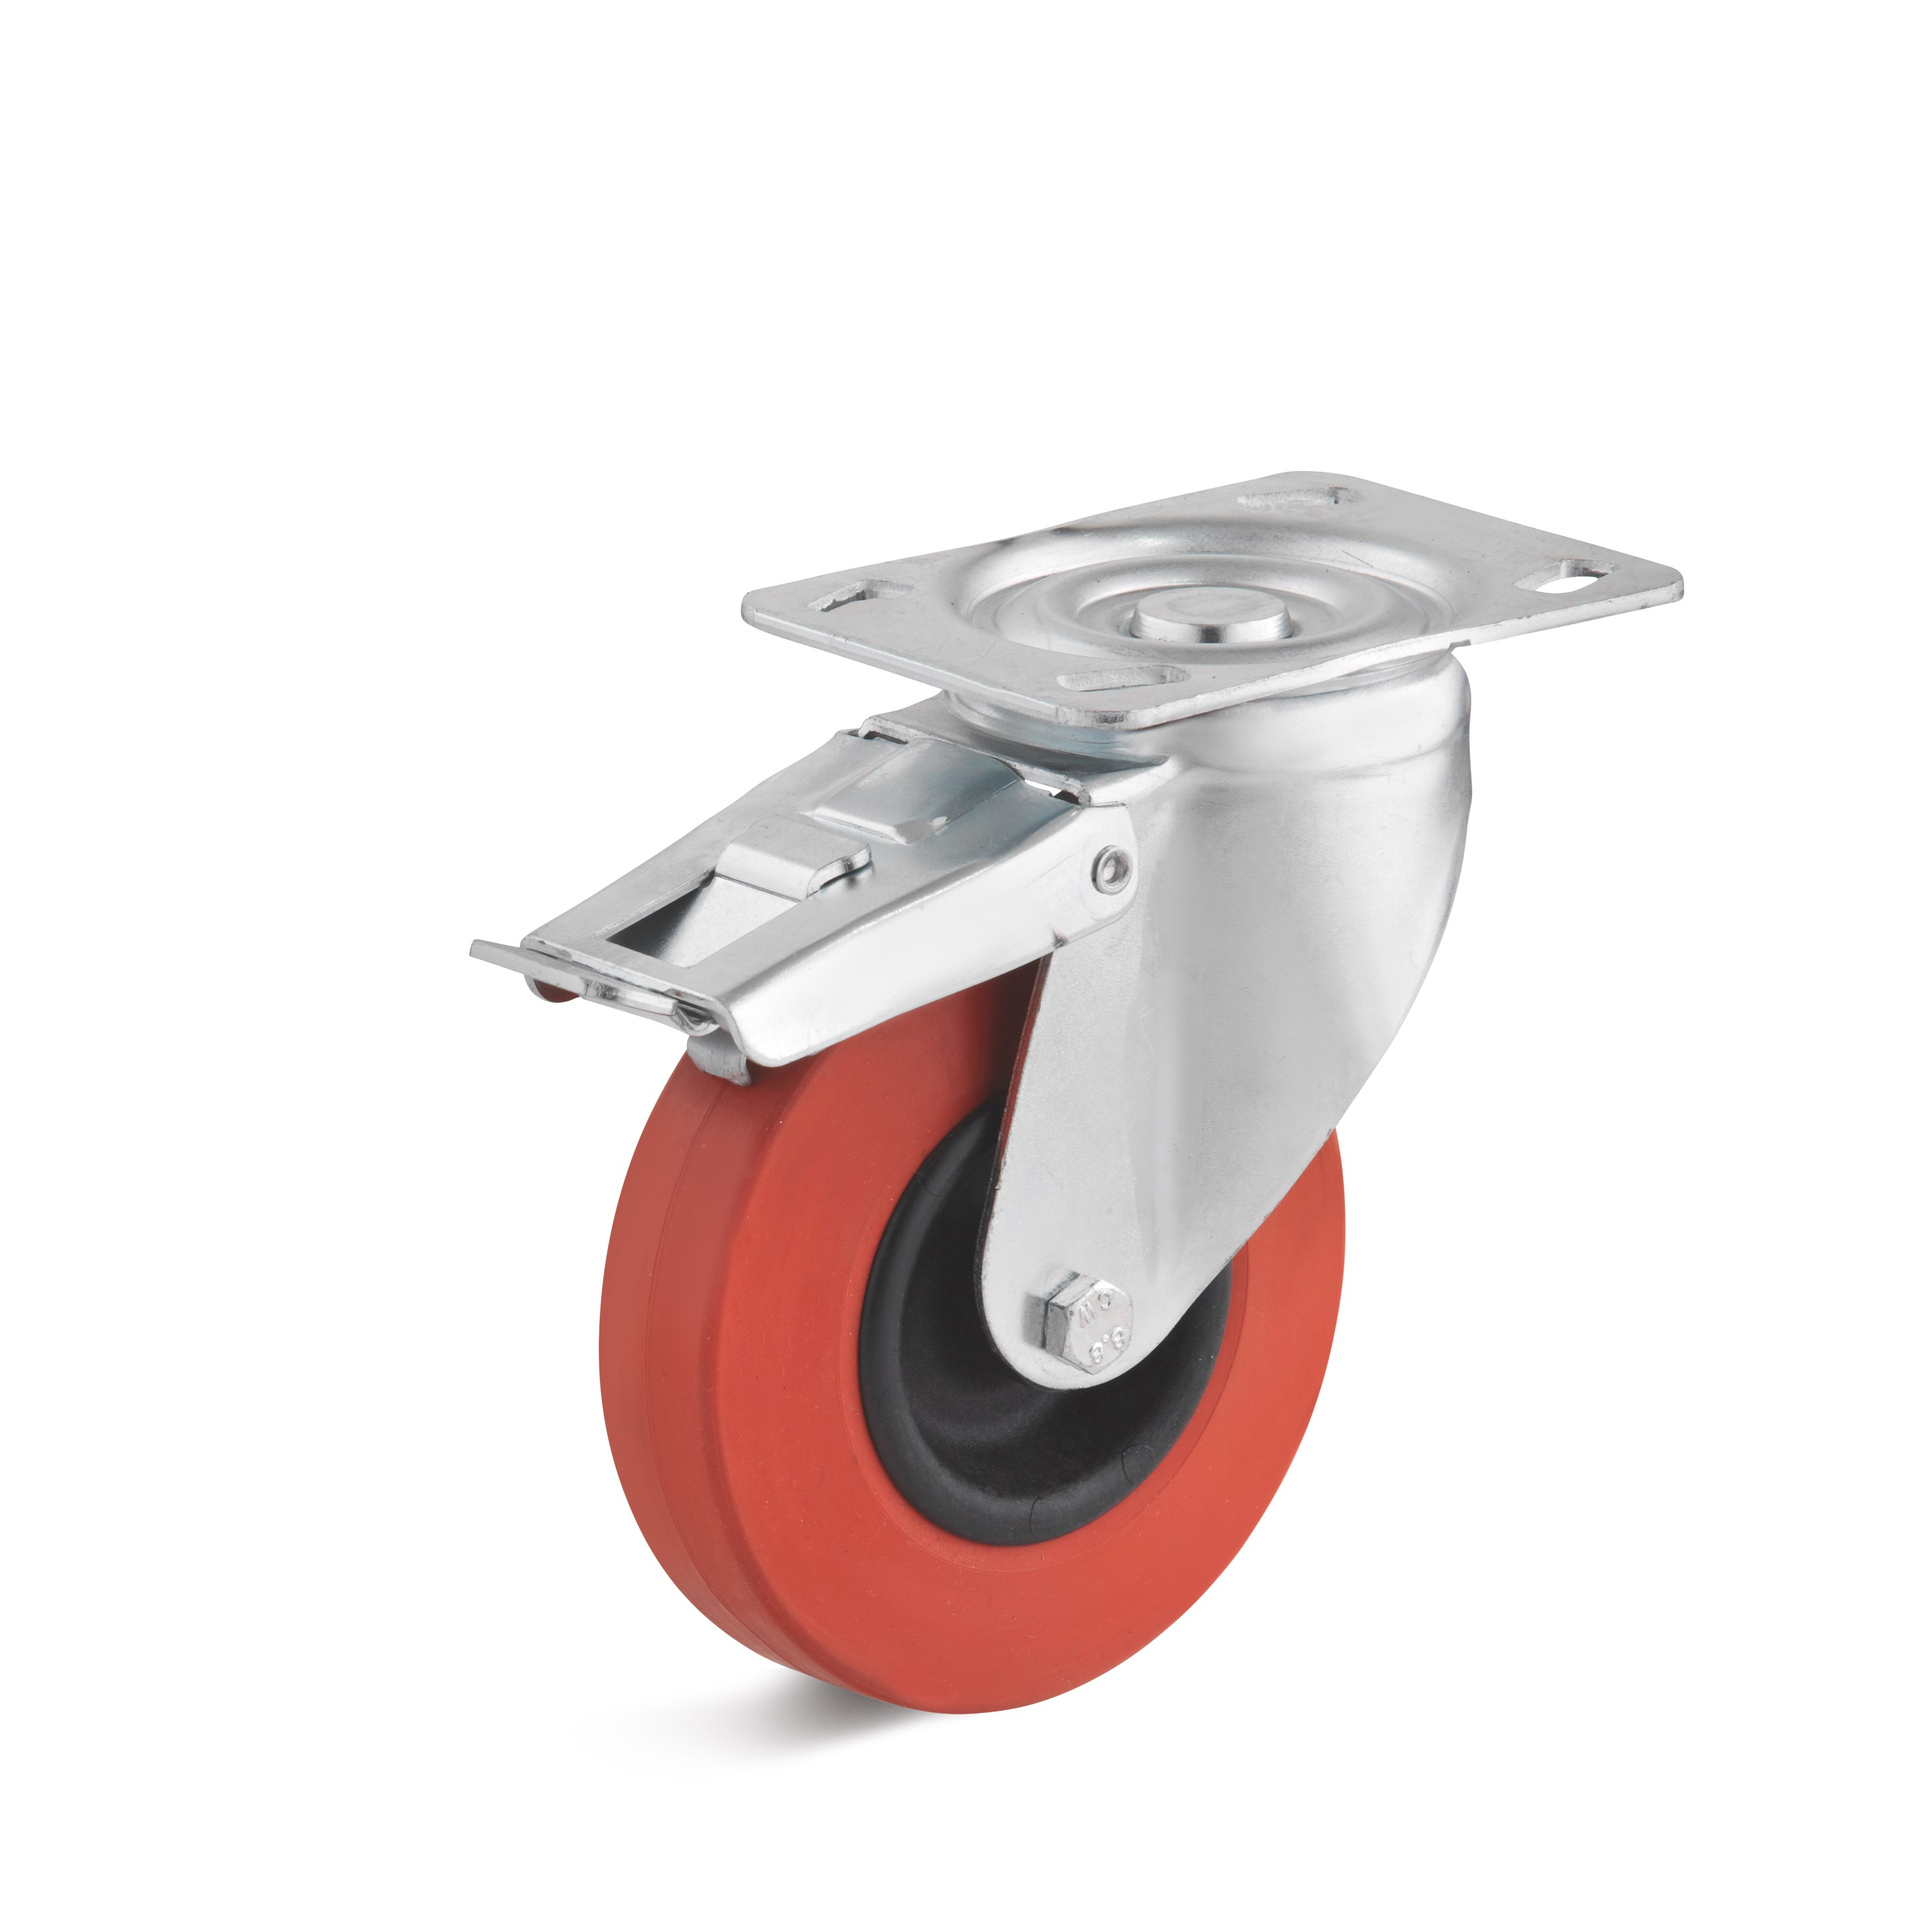 Swivel castor with double stop and heat resistant rubber wheel